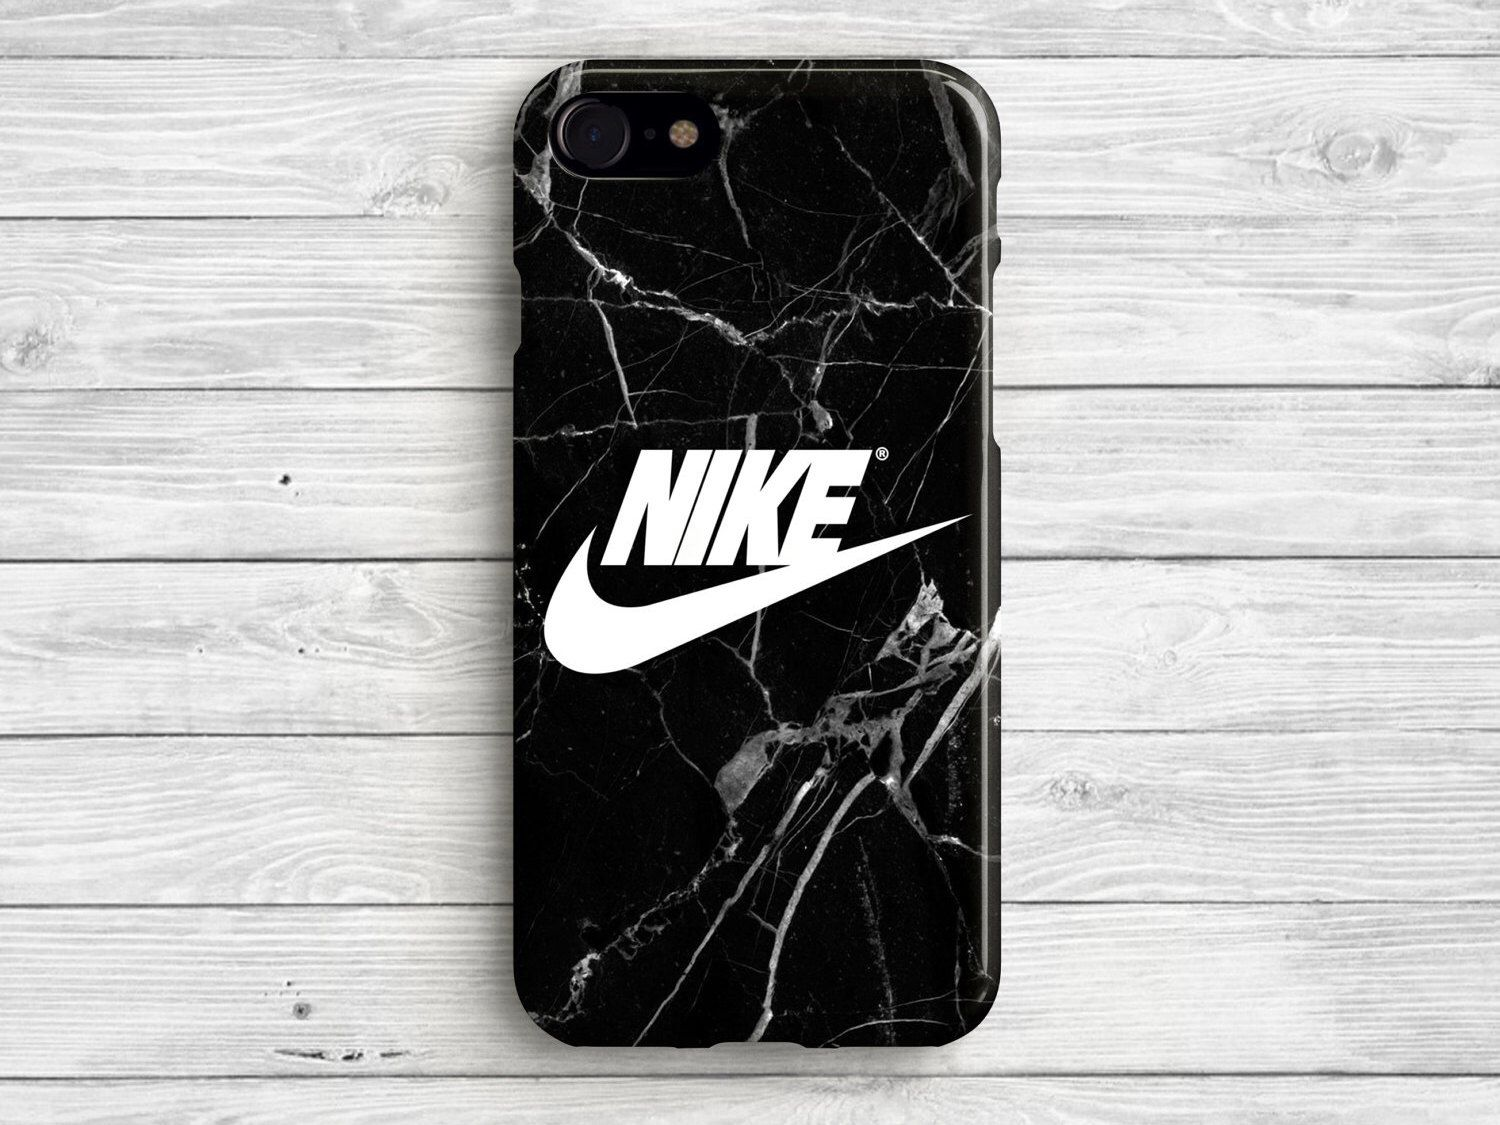 Nike Phone Case iPhone 7 Case Nike iPhone 6 Case iPhone 7 Plus Nike iPhone  Case iPhone 6s Nike Black Marble Case iPhone 6 Plus Case